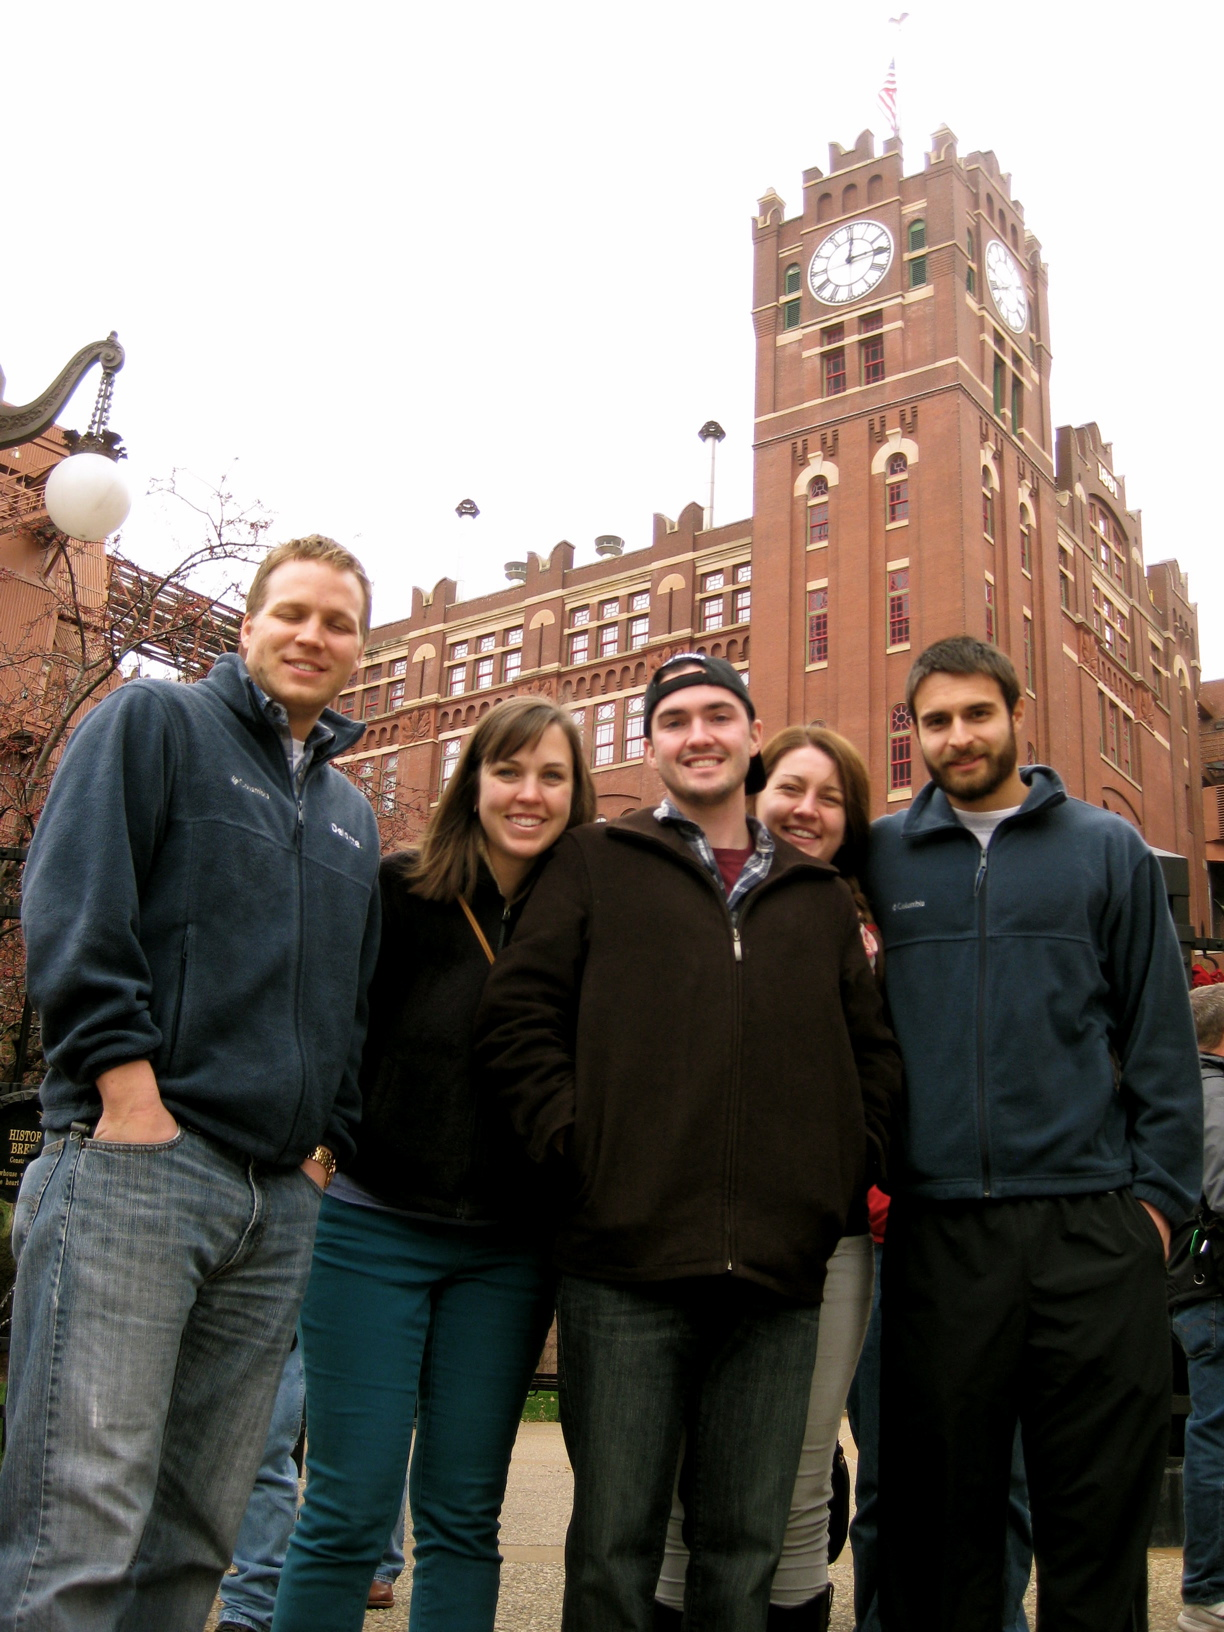 The group outside of the brewery